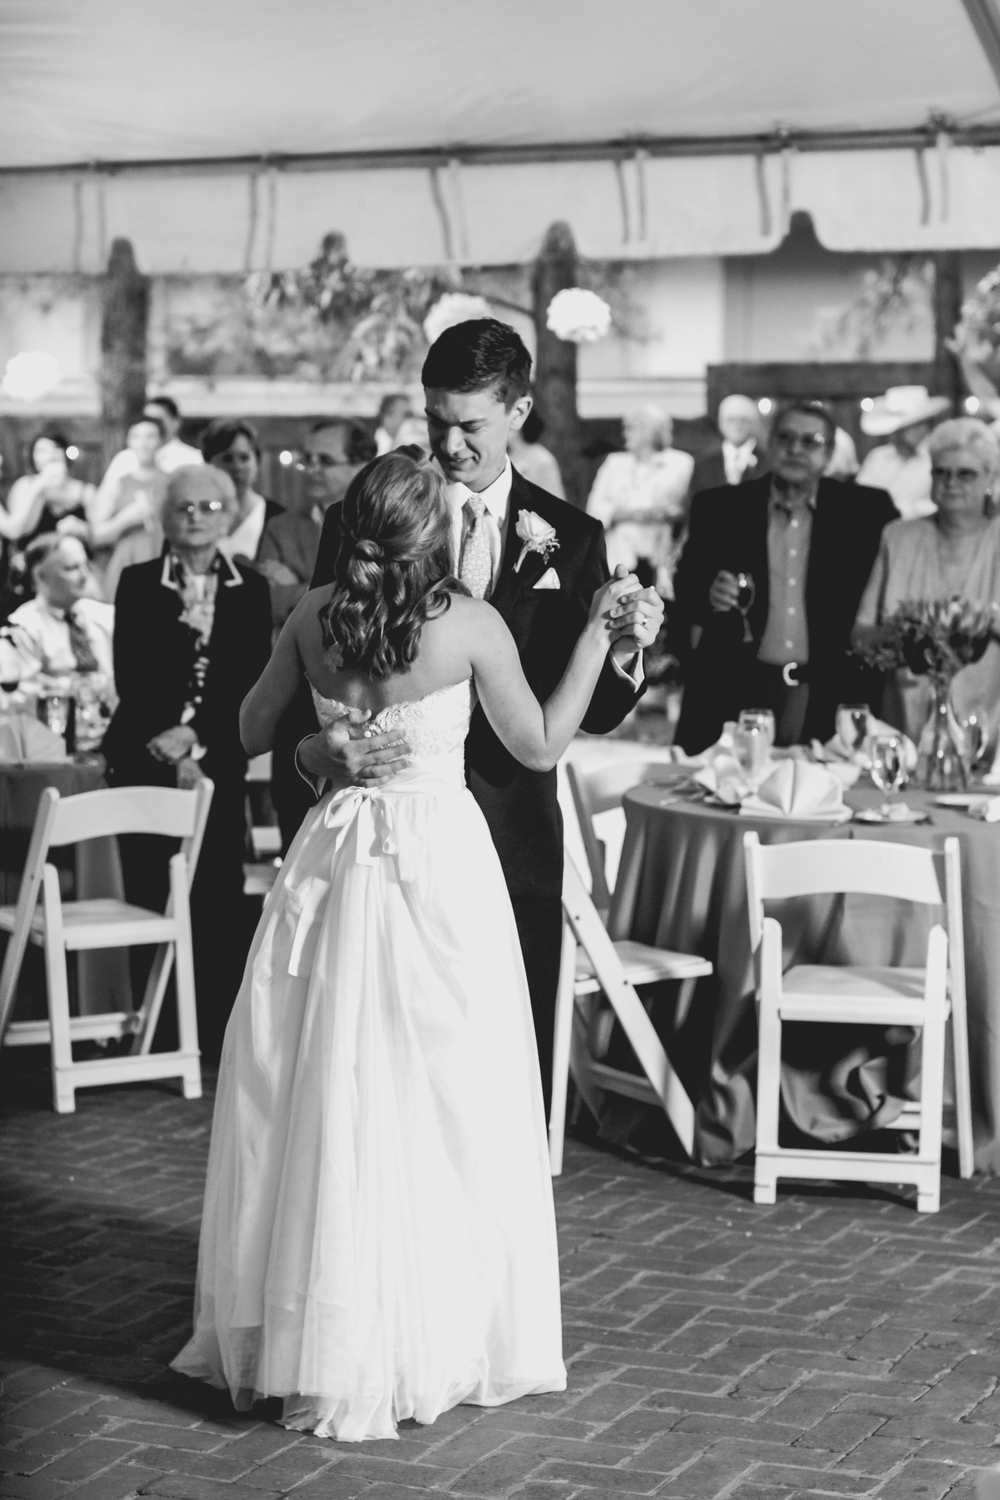 The First Dance   | #HisQueenHerEngelking Wedding | Photography by Two Arrows Photography at twoarrowsphoto.com